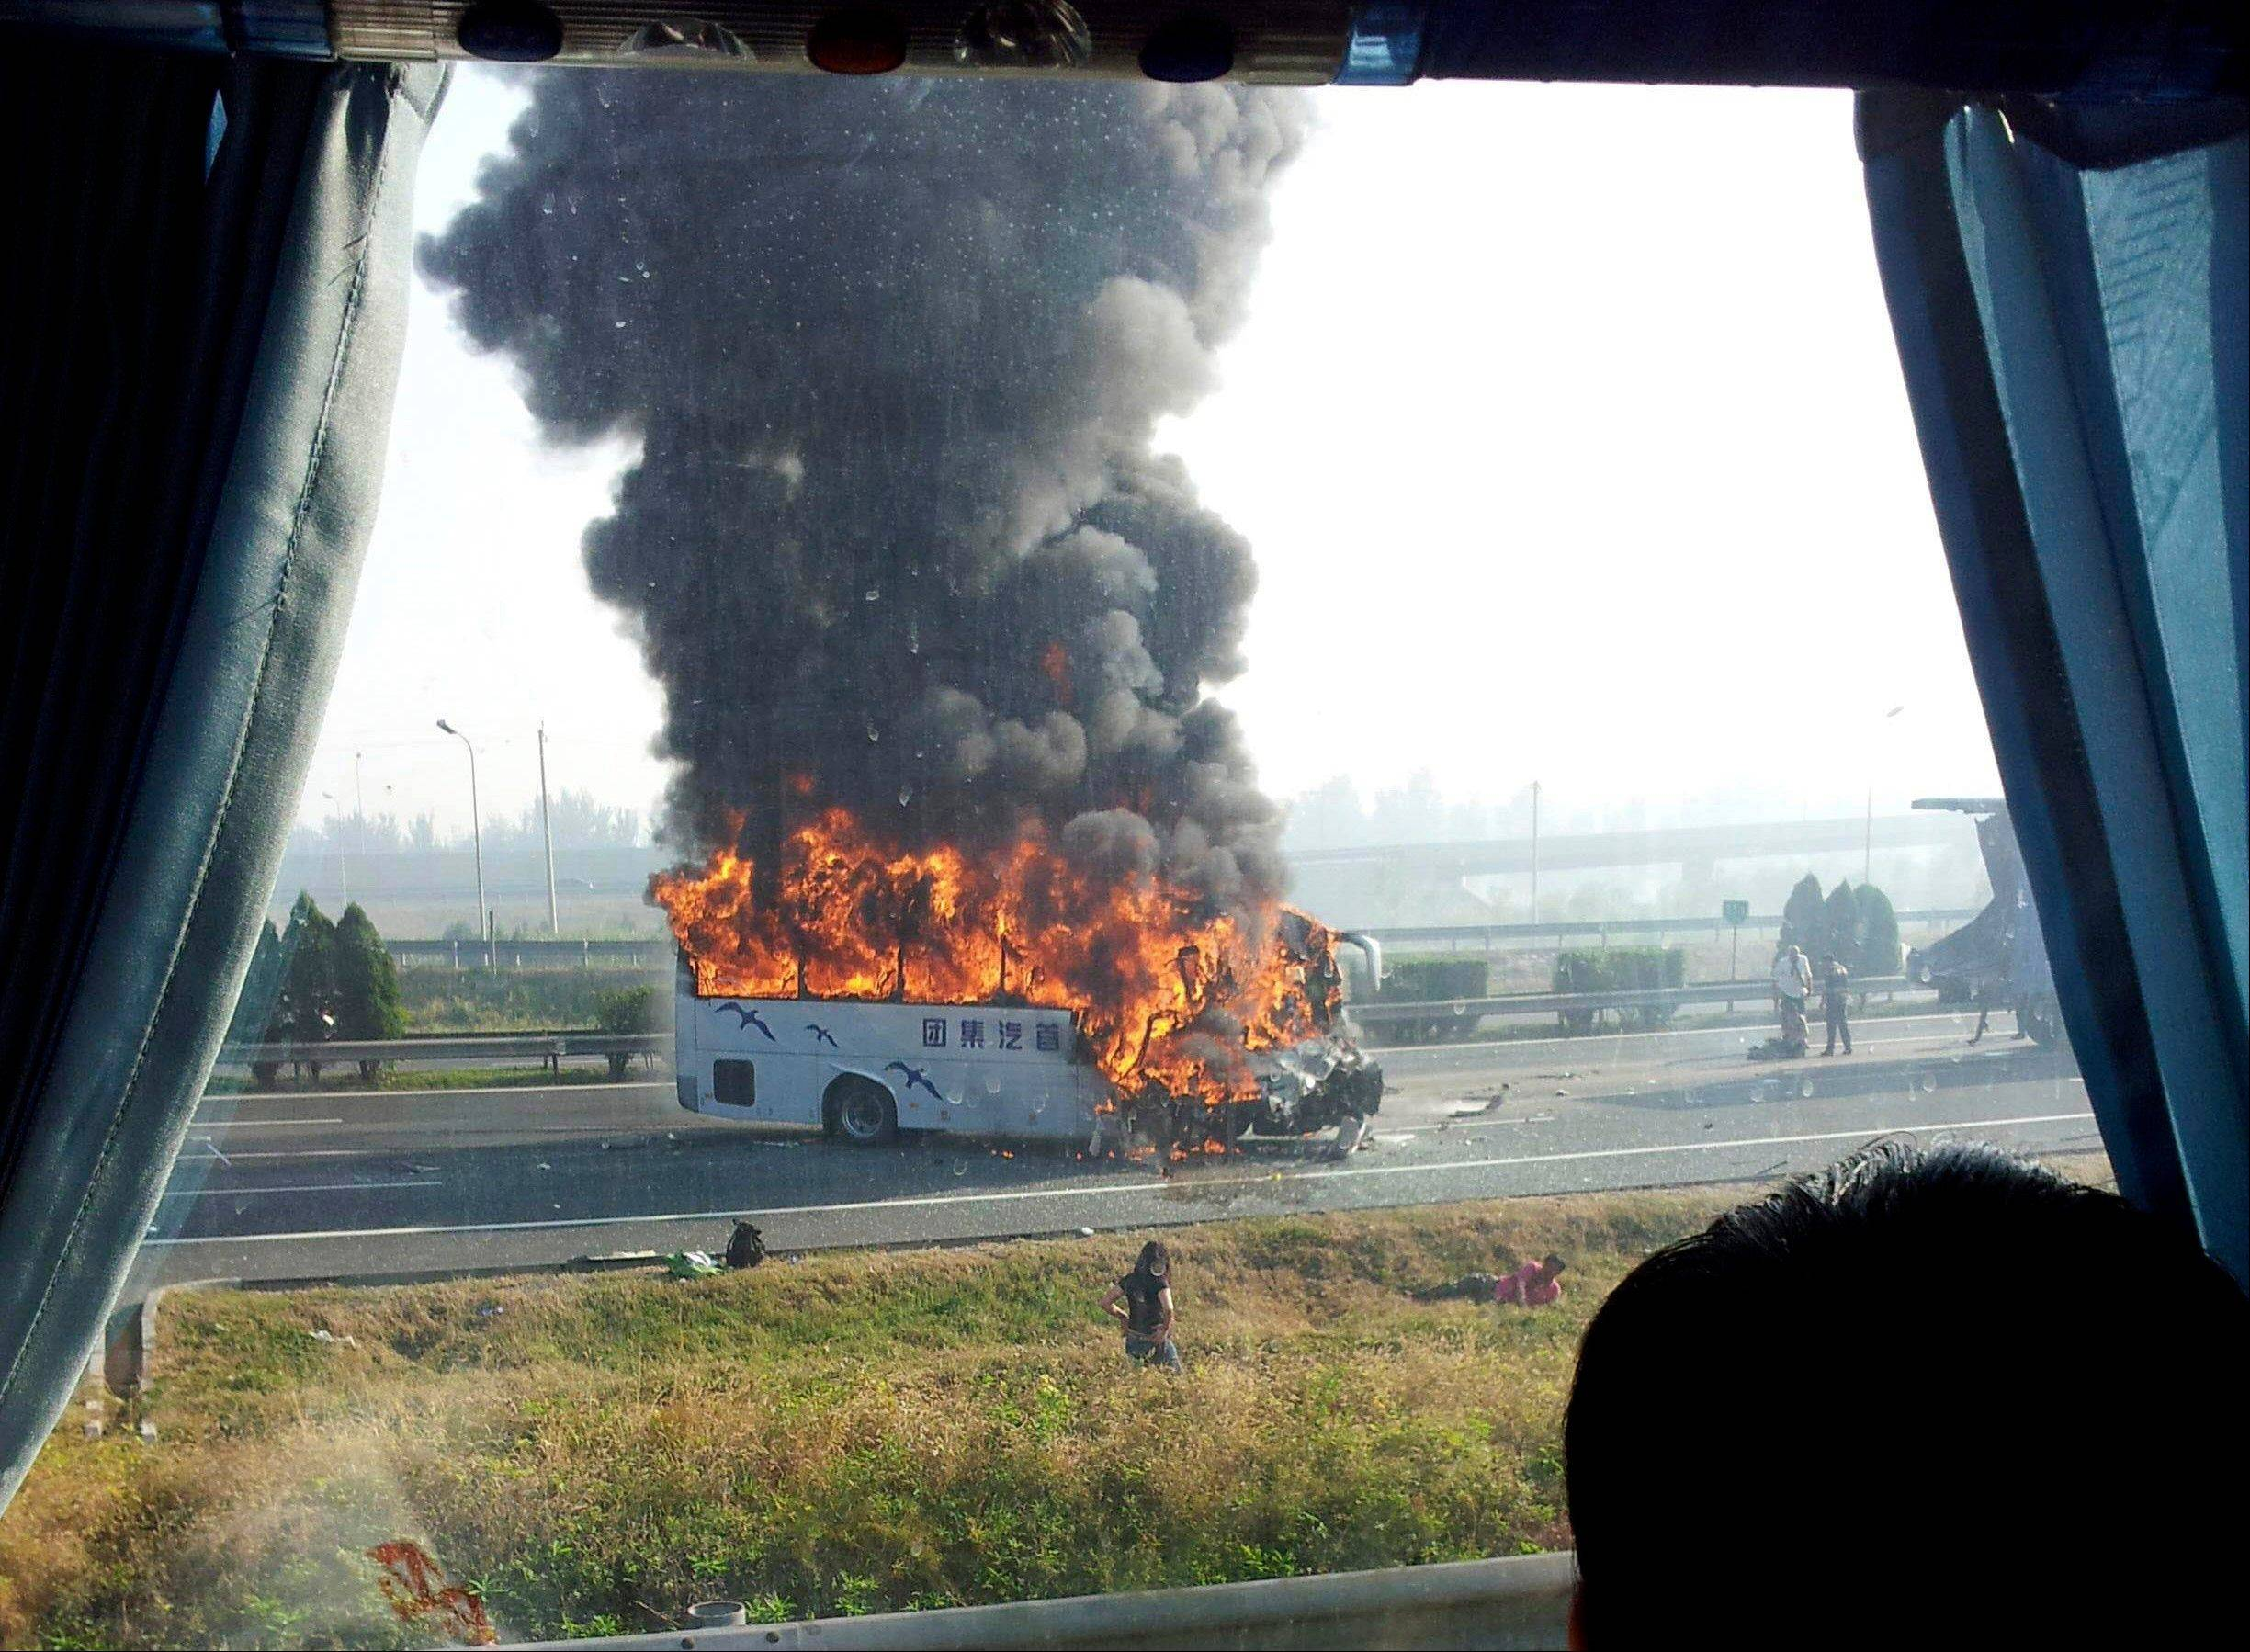 A tourist bus is engulfed in flames on an expressway near Tianjin, China, Monday. Five Germans and a Chinese citizen were killed when the bus burst into flames after hitting the back of a truck, the Xinhua News Agency said.